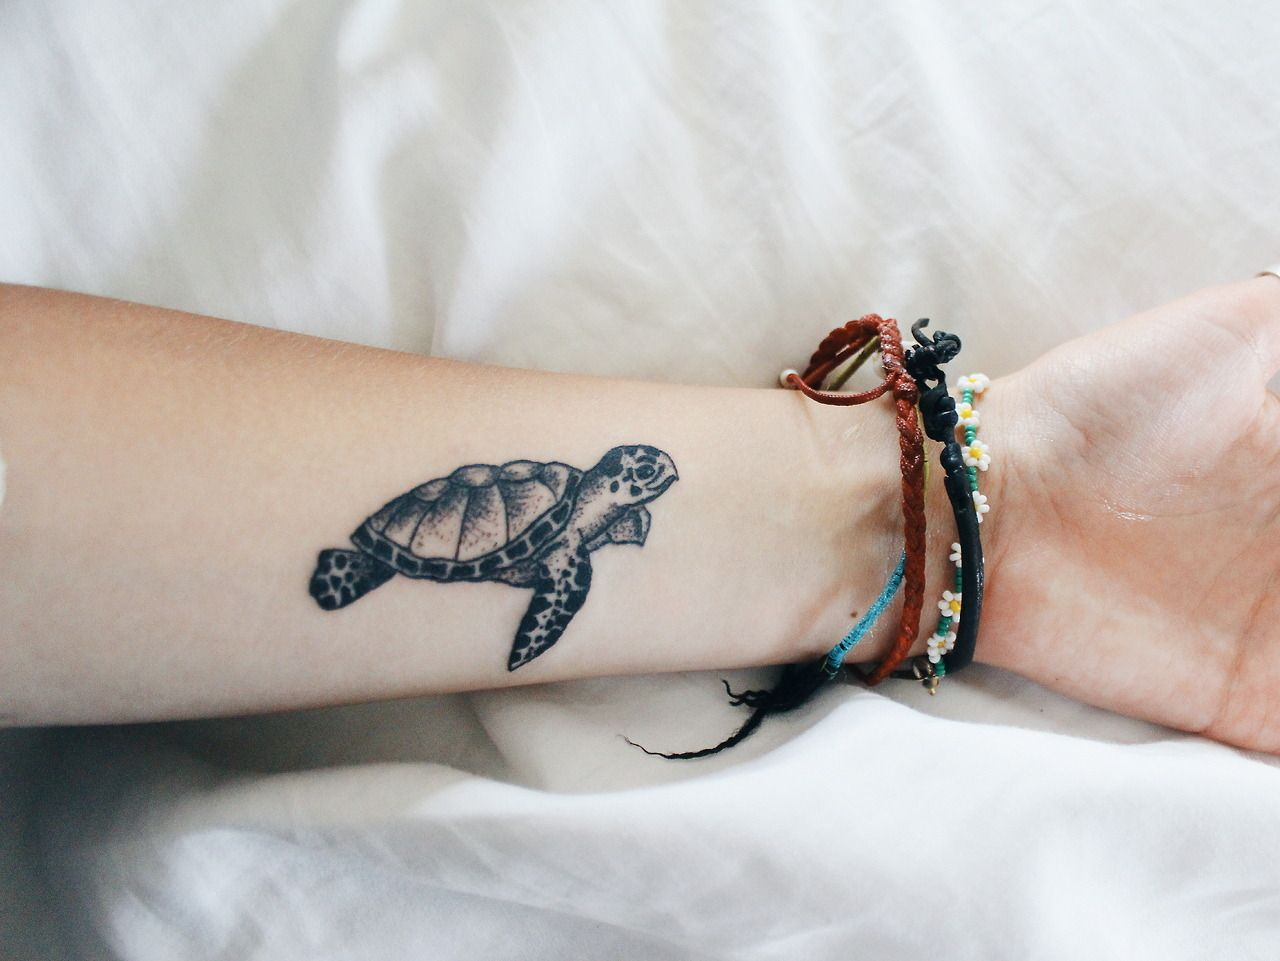 Carlynotcarley new tattoo check out my amazing tattoo for Little turtle tattoo